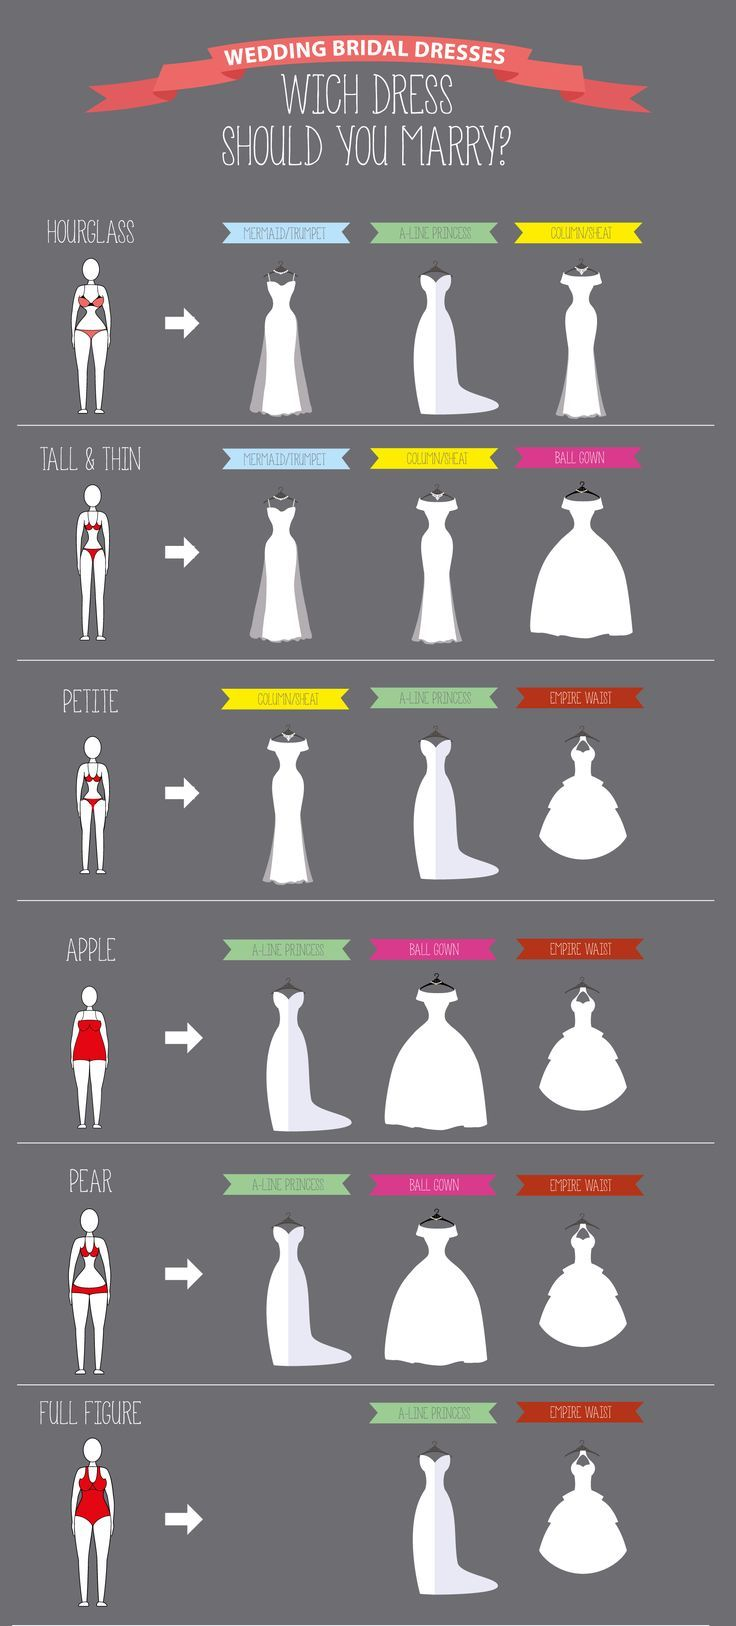 Ultimate Guide To Wedding Dresses | Everything You Need to Know | Team Wedding B...